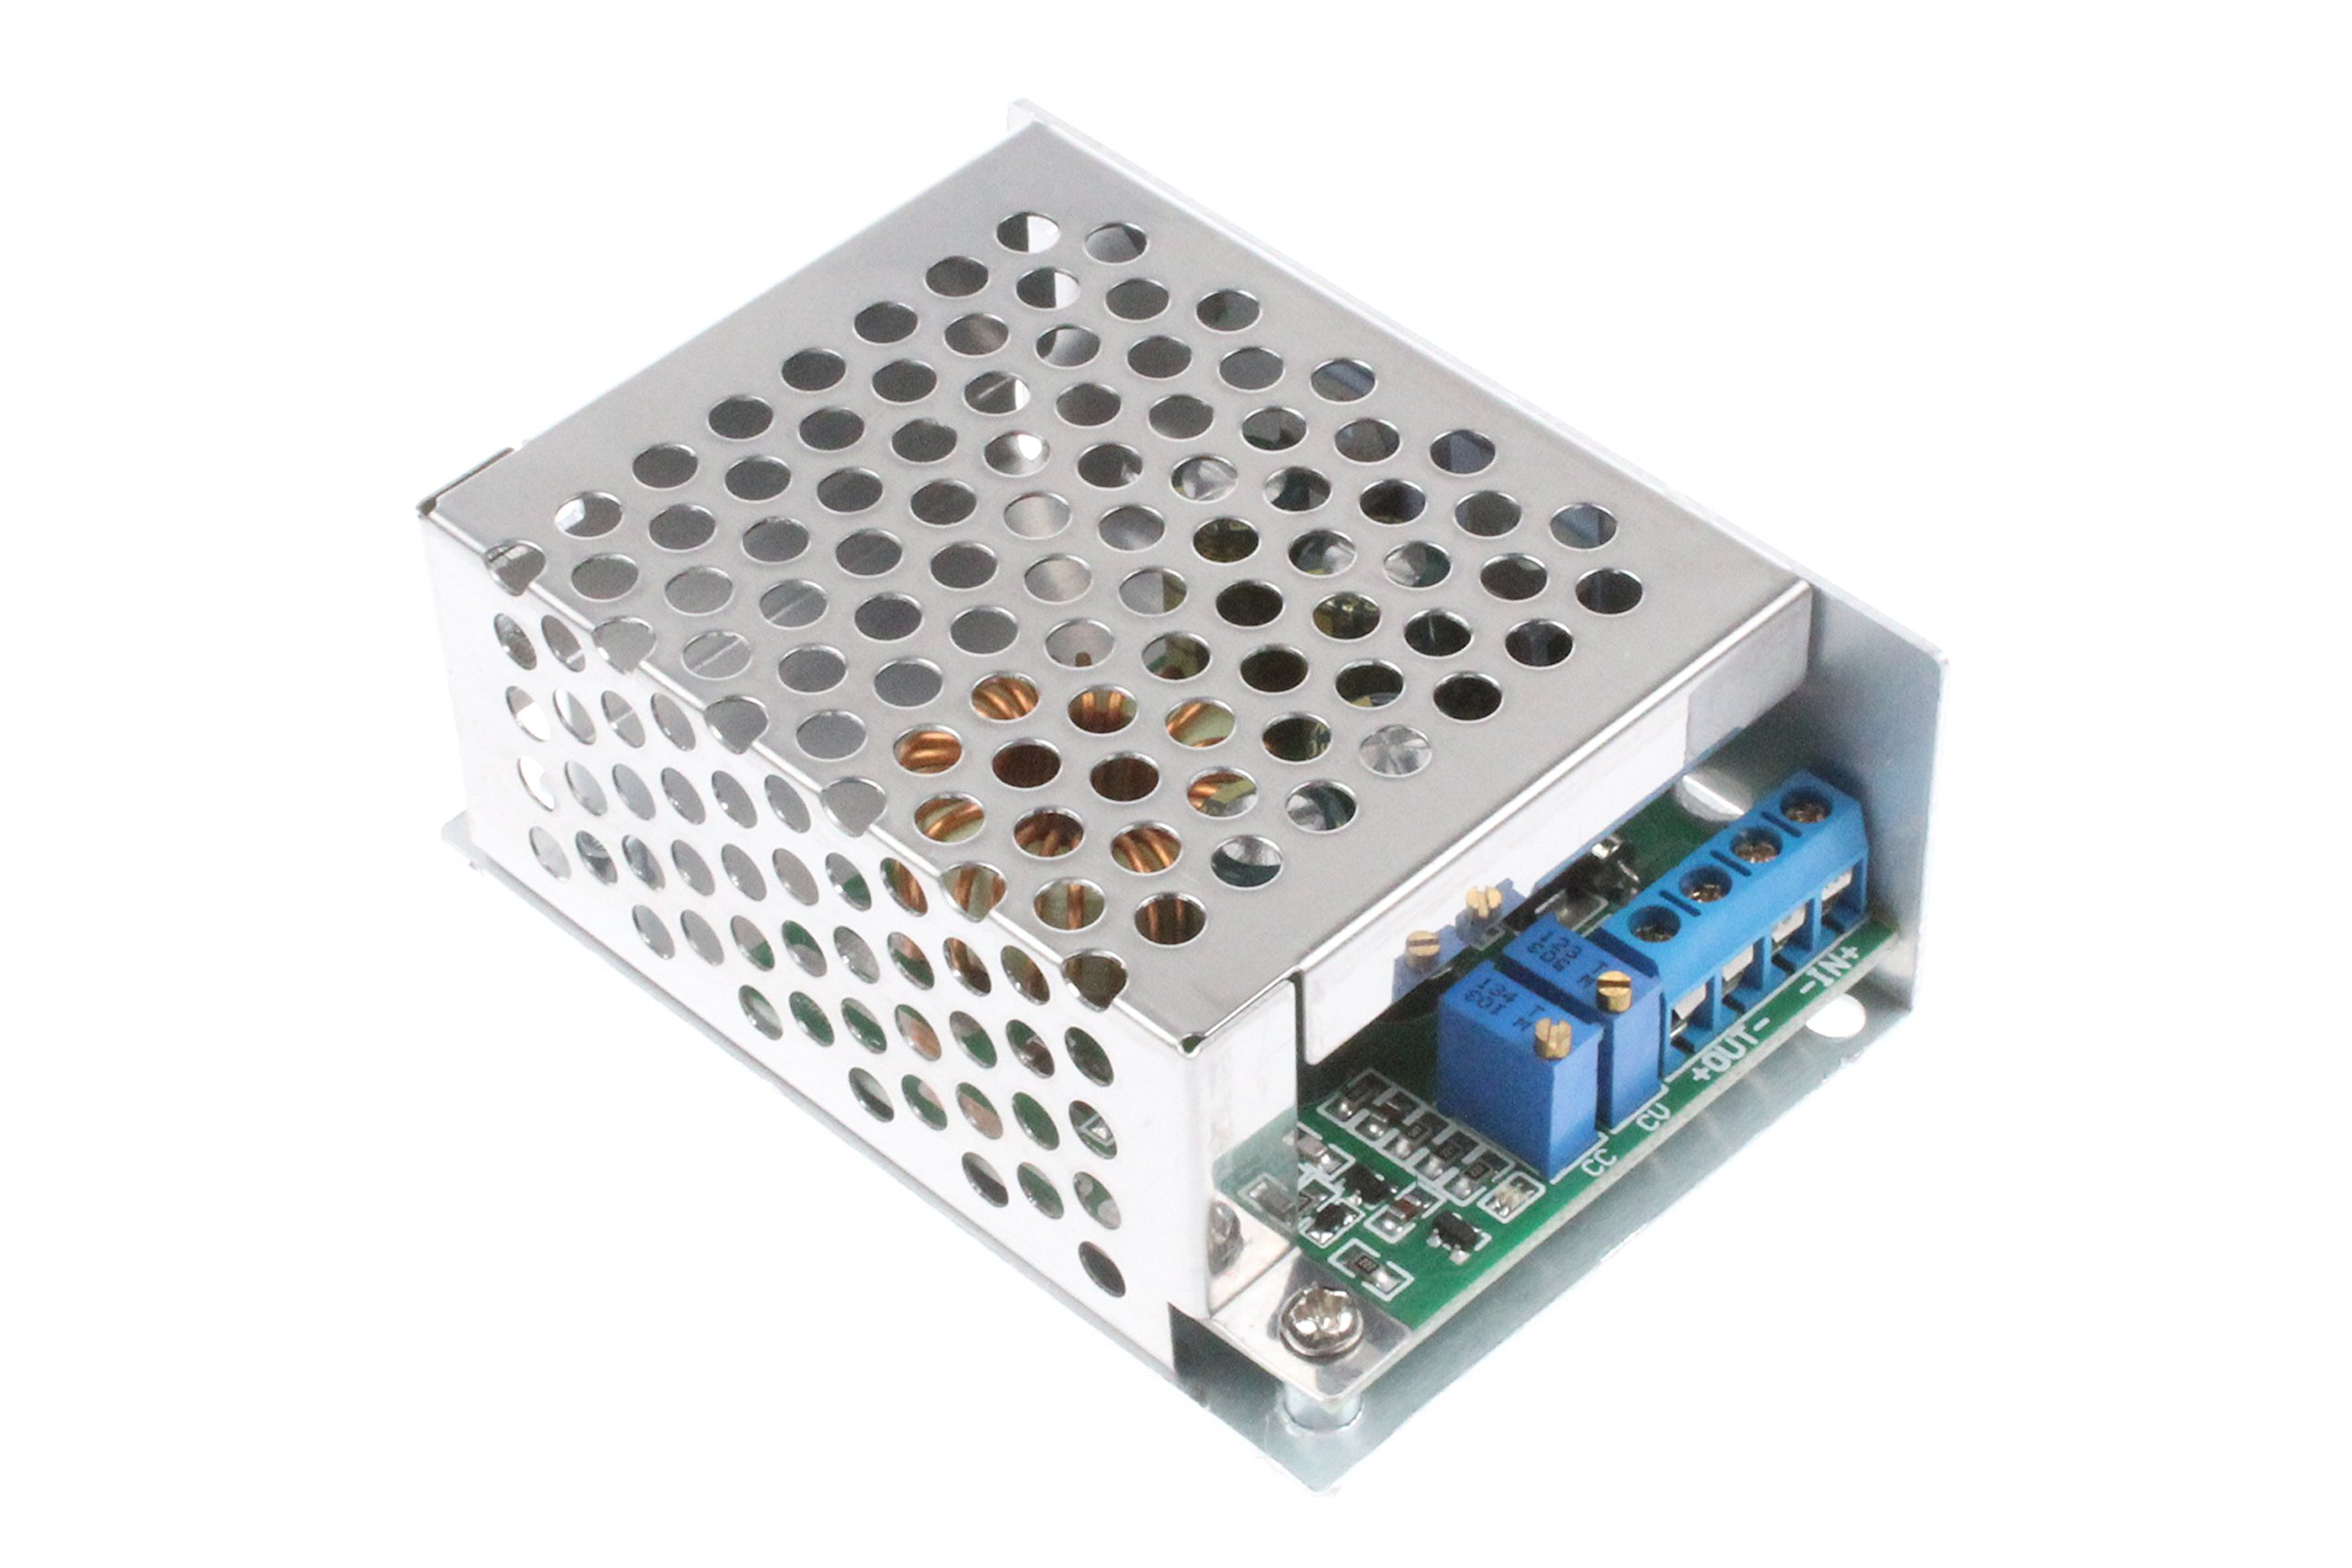 DC-DC Adjustable Buck Power Supply Module CC CV 7-30V to 1.2-29V 9A 300W Max Charge Module Suitable for high power LED driver, Battery Charging, Power Supply